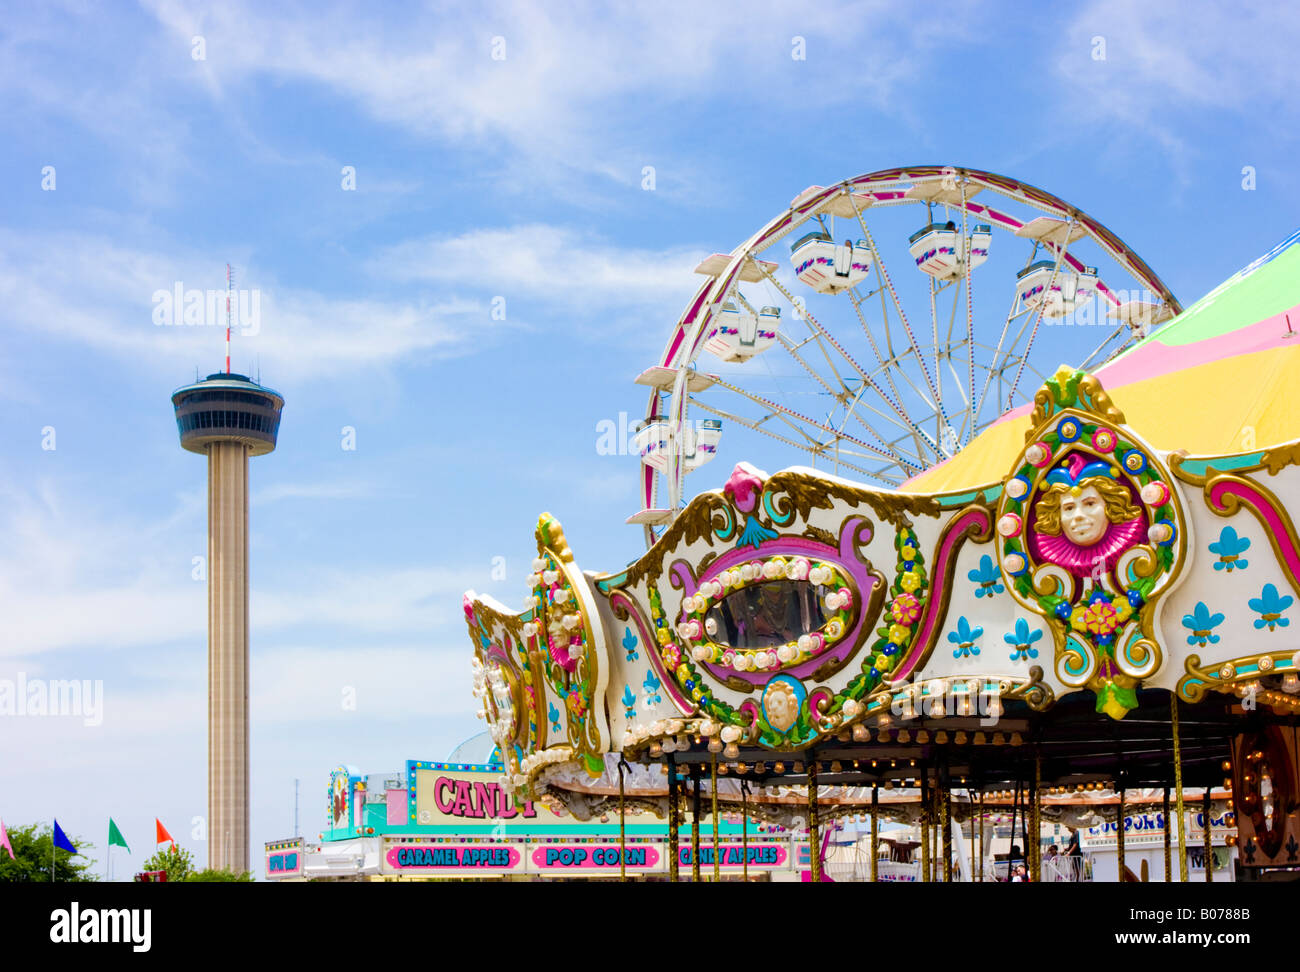 Fiesta carnival rides and tower of americas in san antonio texas stock image